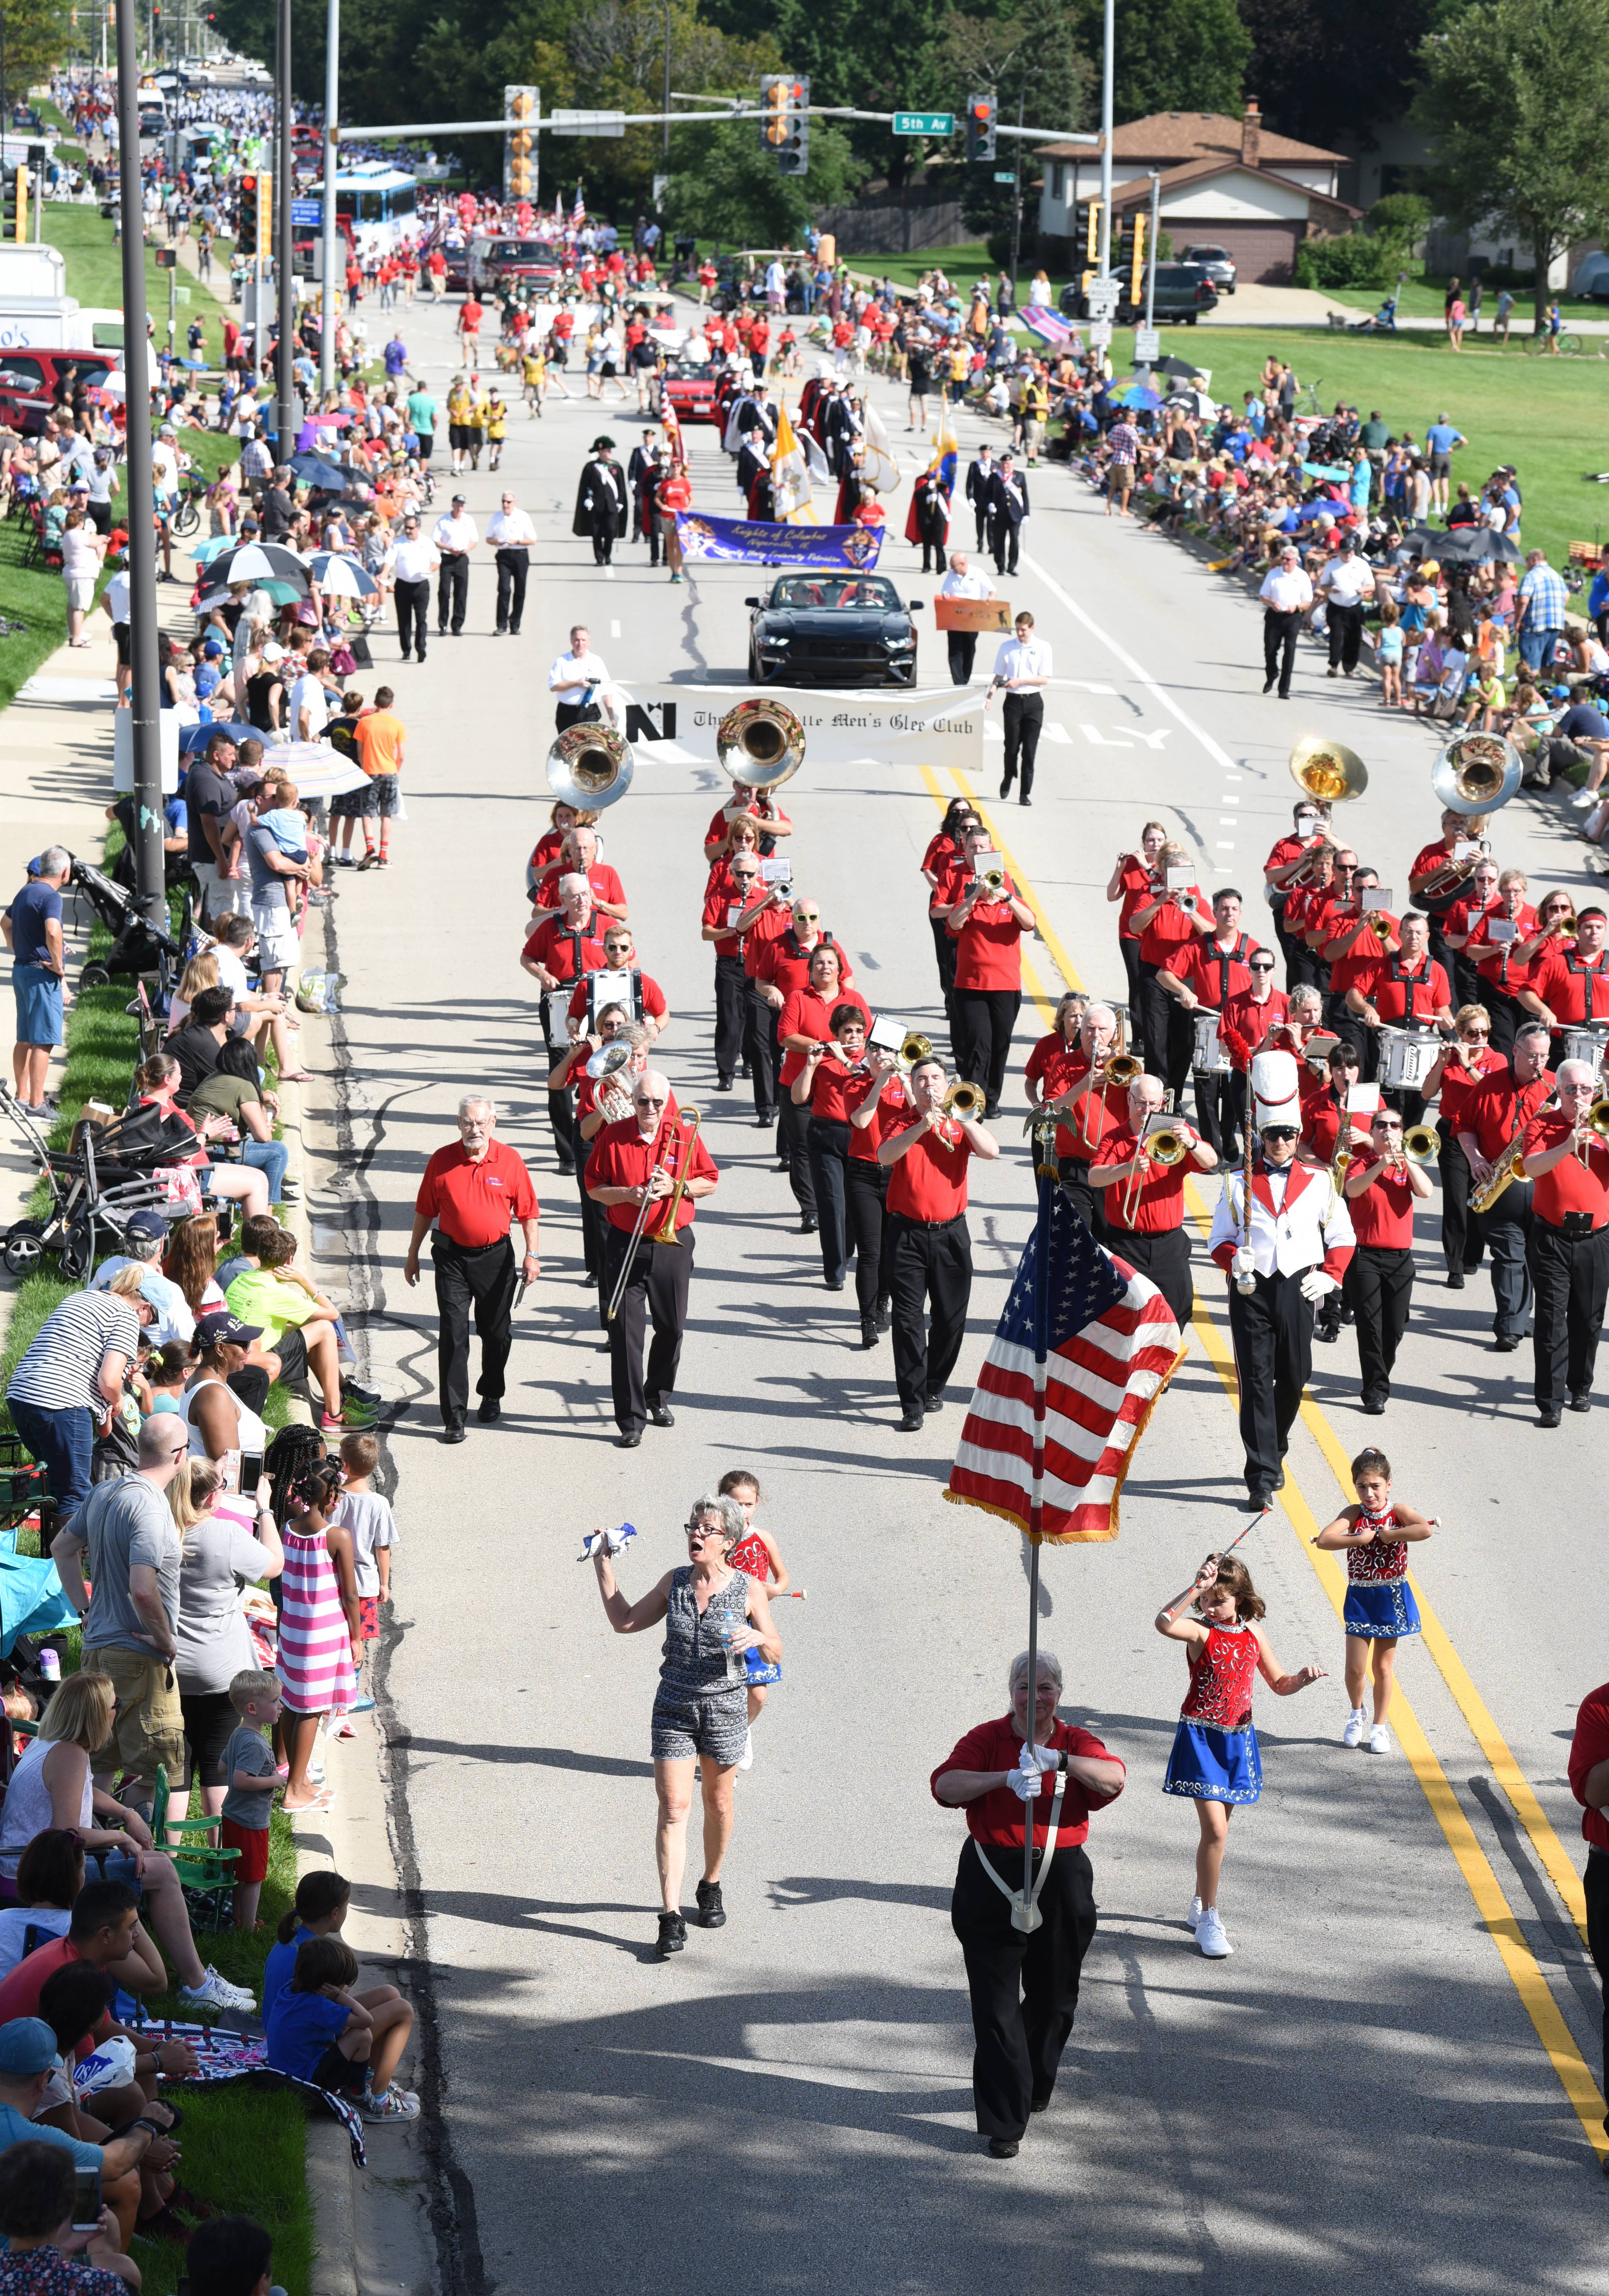 The Labor Day parade has been a part of the Last Fling tradition in Naperville since the event started in 1966. Now organizers with Naperville Jaycees are looking for ways to scale back their entertainment budget to ensure the event remains affordable for families and a good fundraiser for nonprofits in the area.